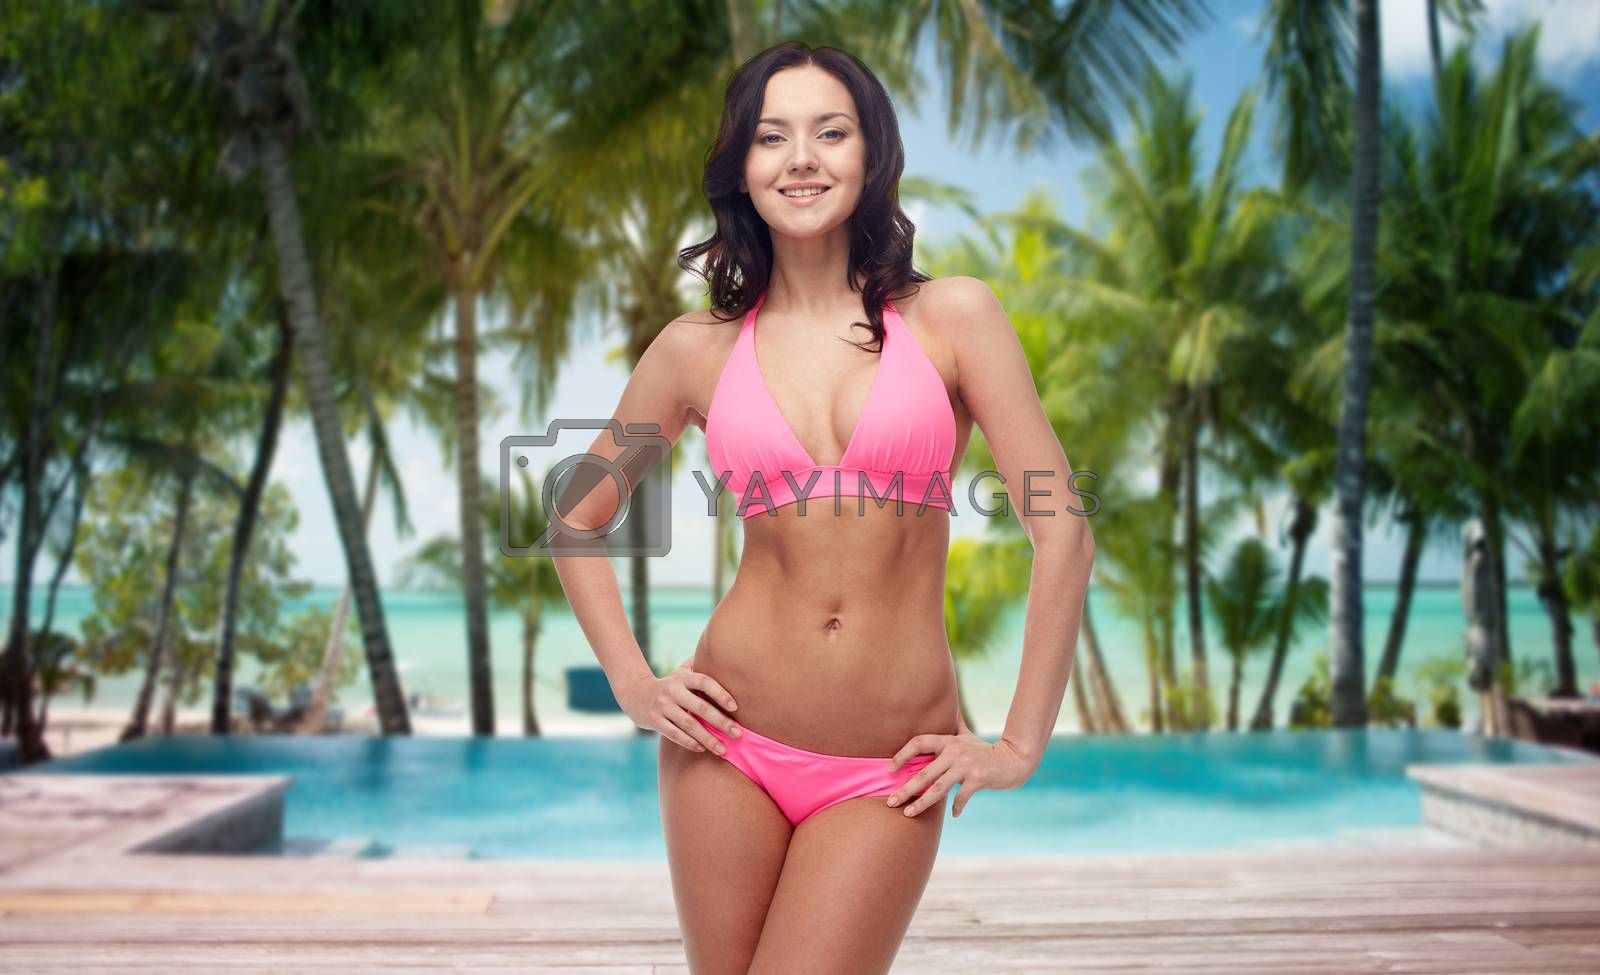 people, fashion, swimwear, summer and travel concept - happy young woman posing in pink bikini swimsuit over tropical beach with swimming pool background